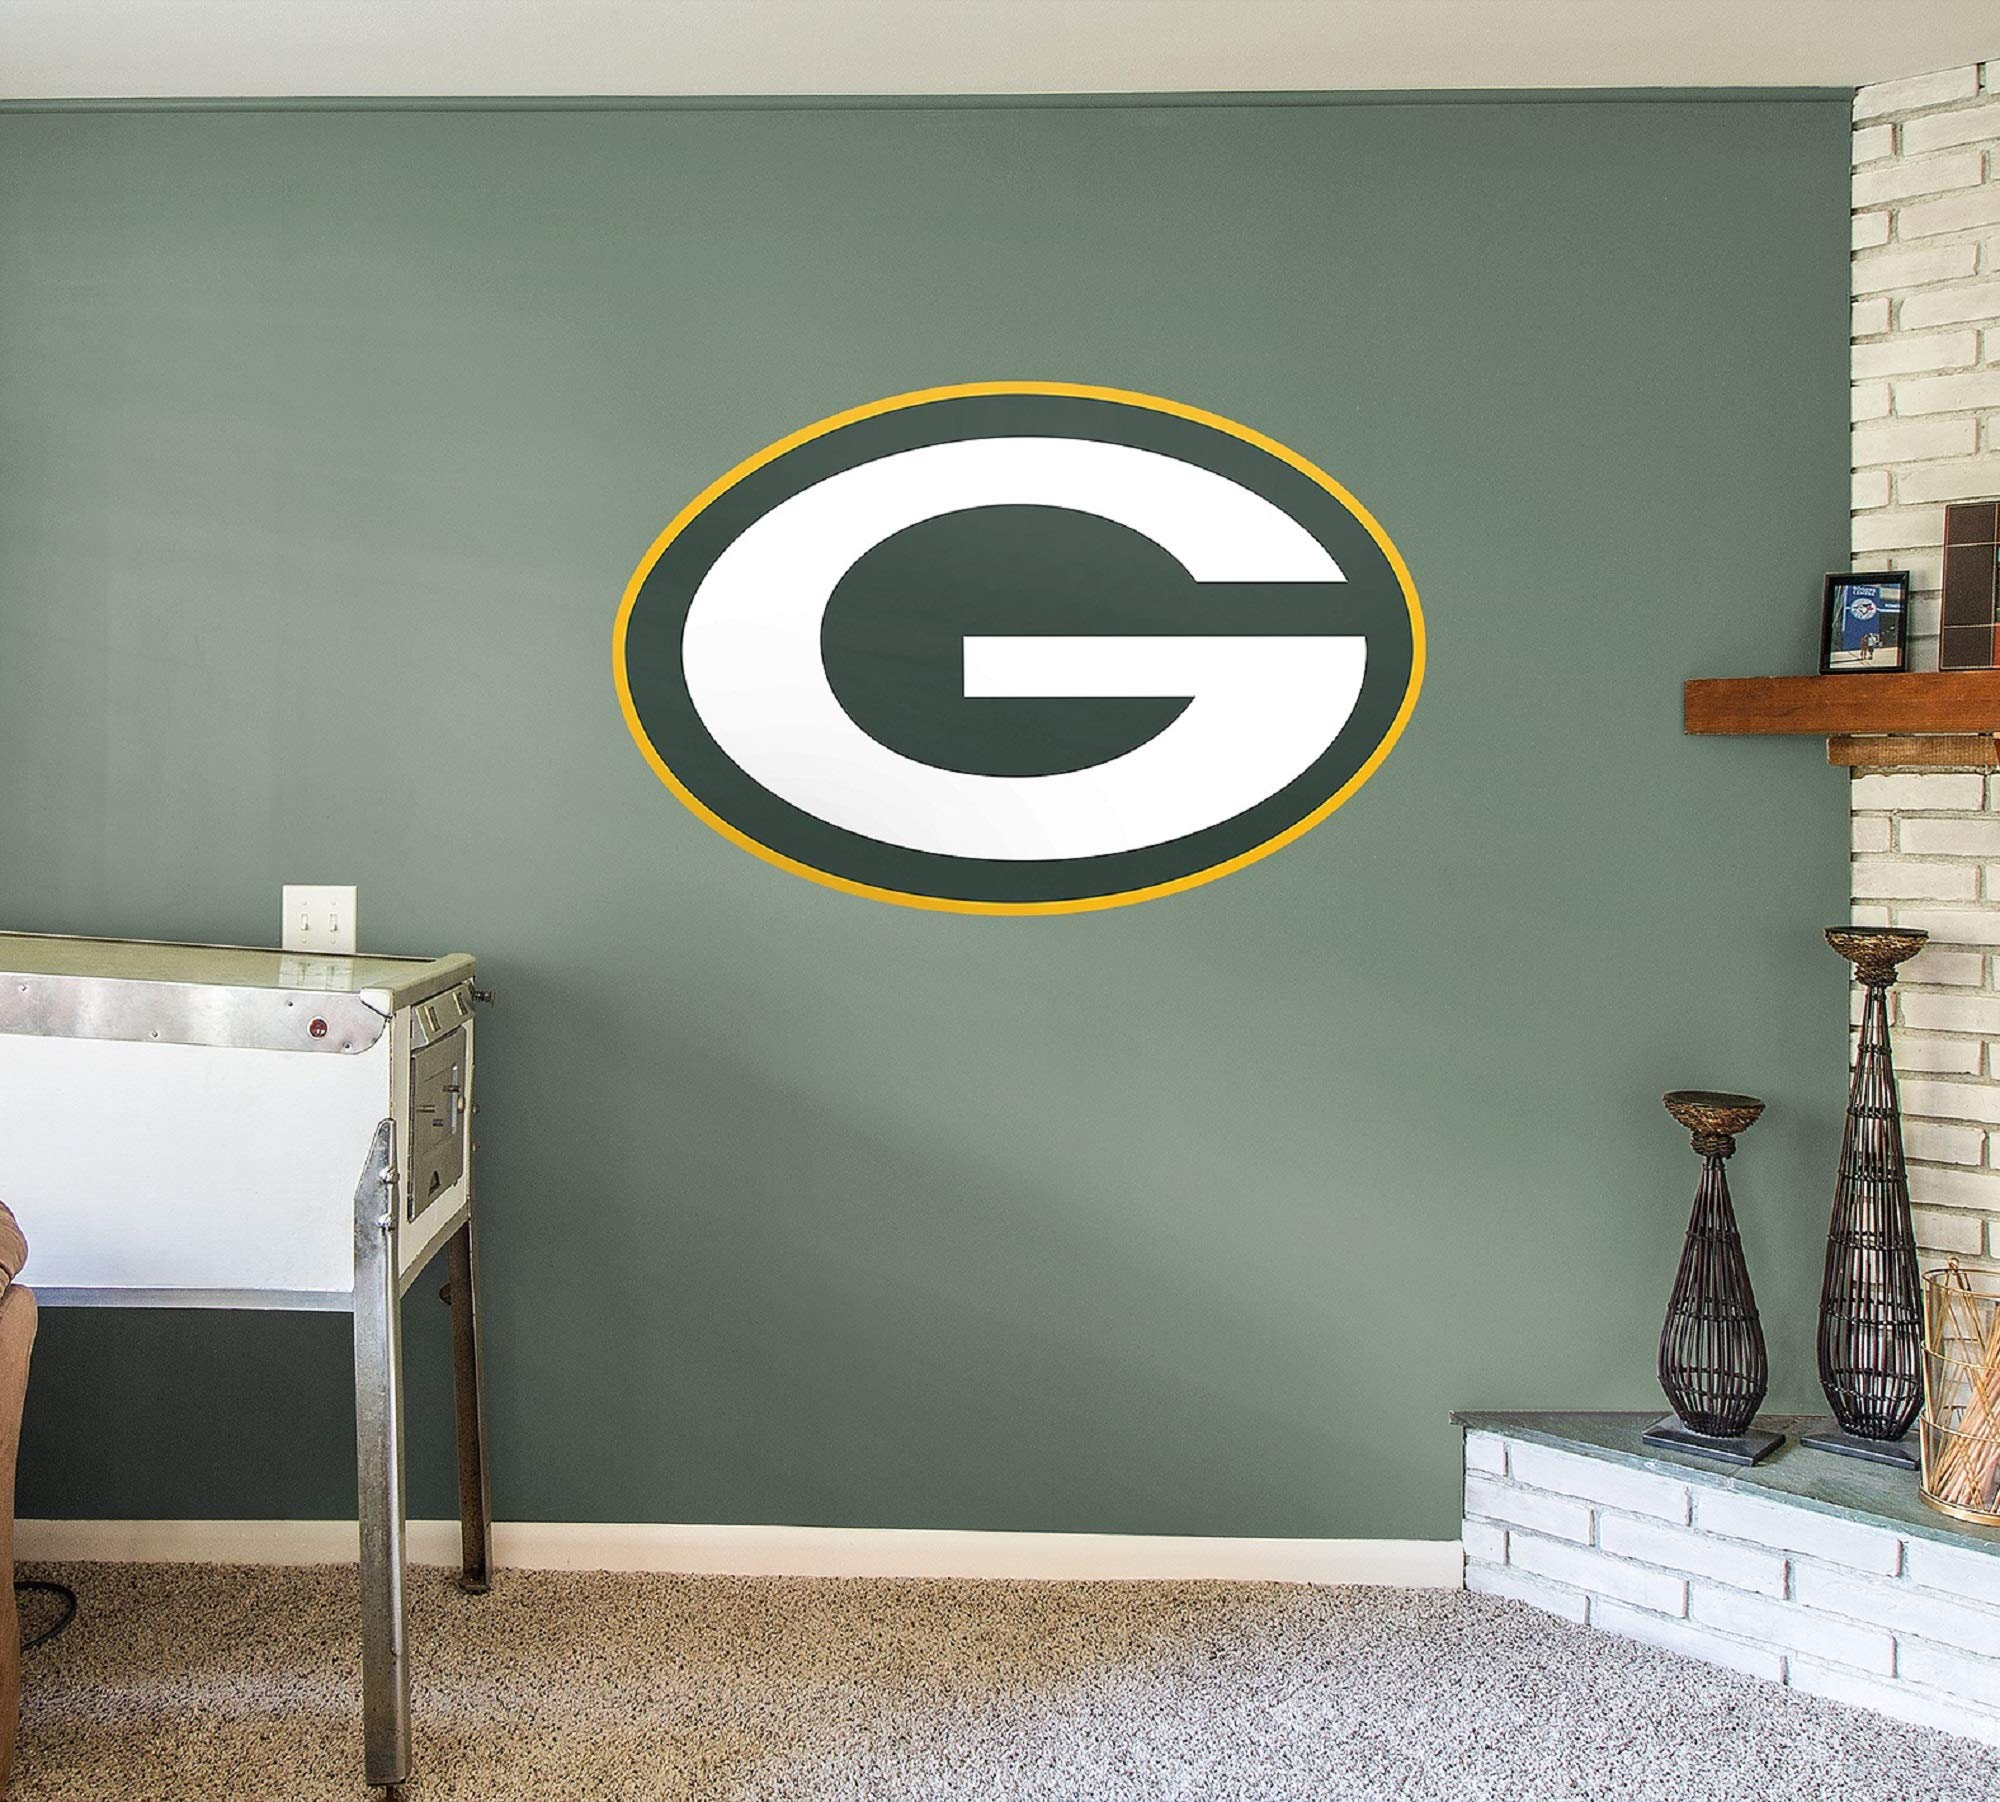 Fathead NFL Green Bay Packers Officially Licensed Logo Removable Wall Decal, Multicolor, Giant - 14-14014 by FATHEAD